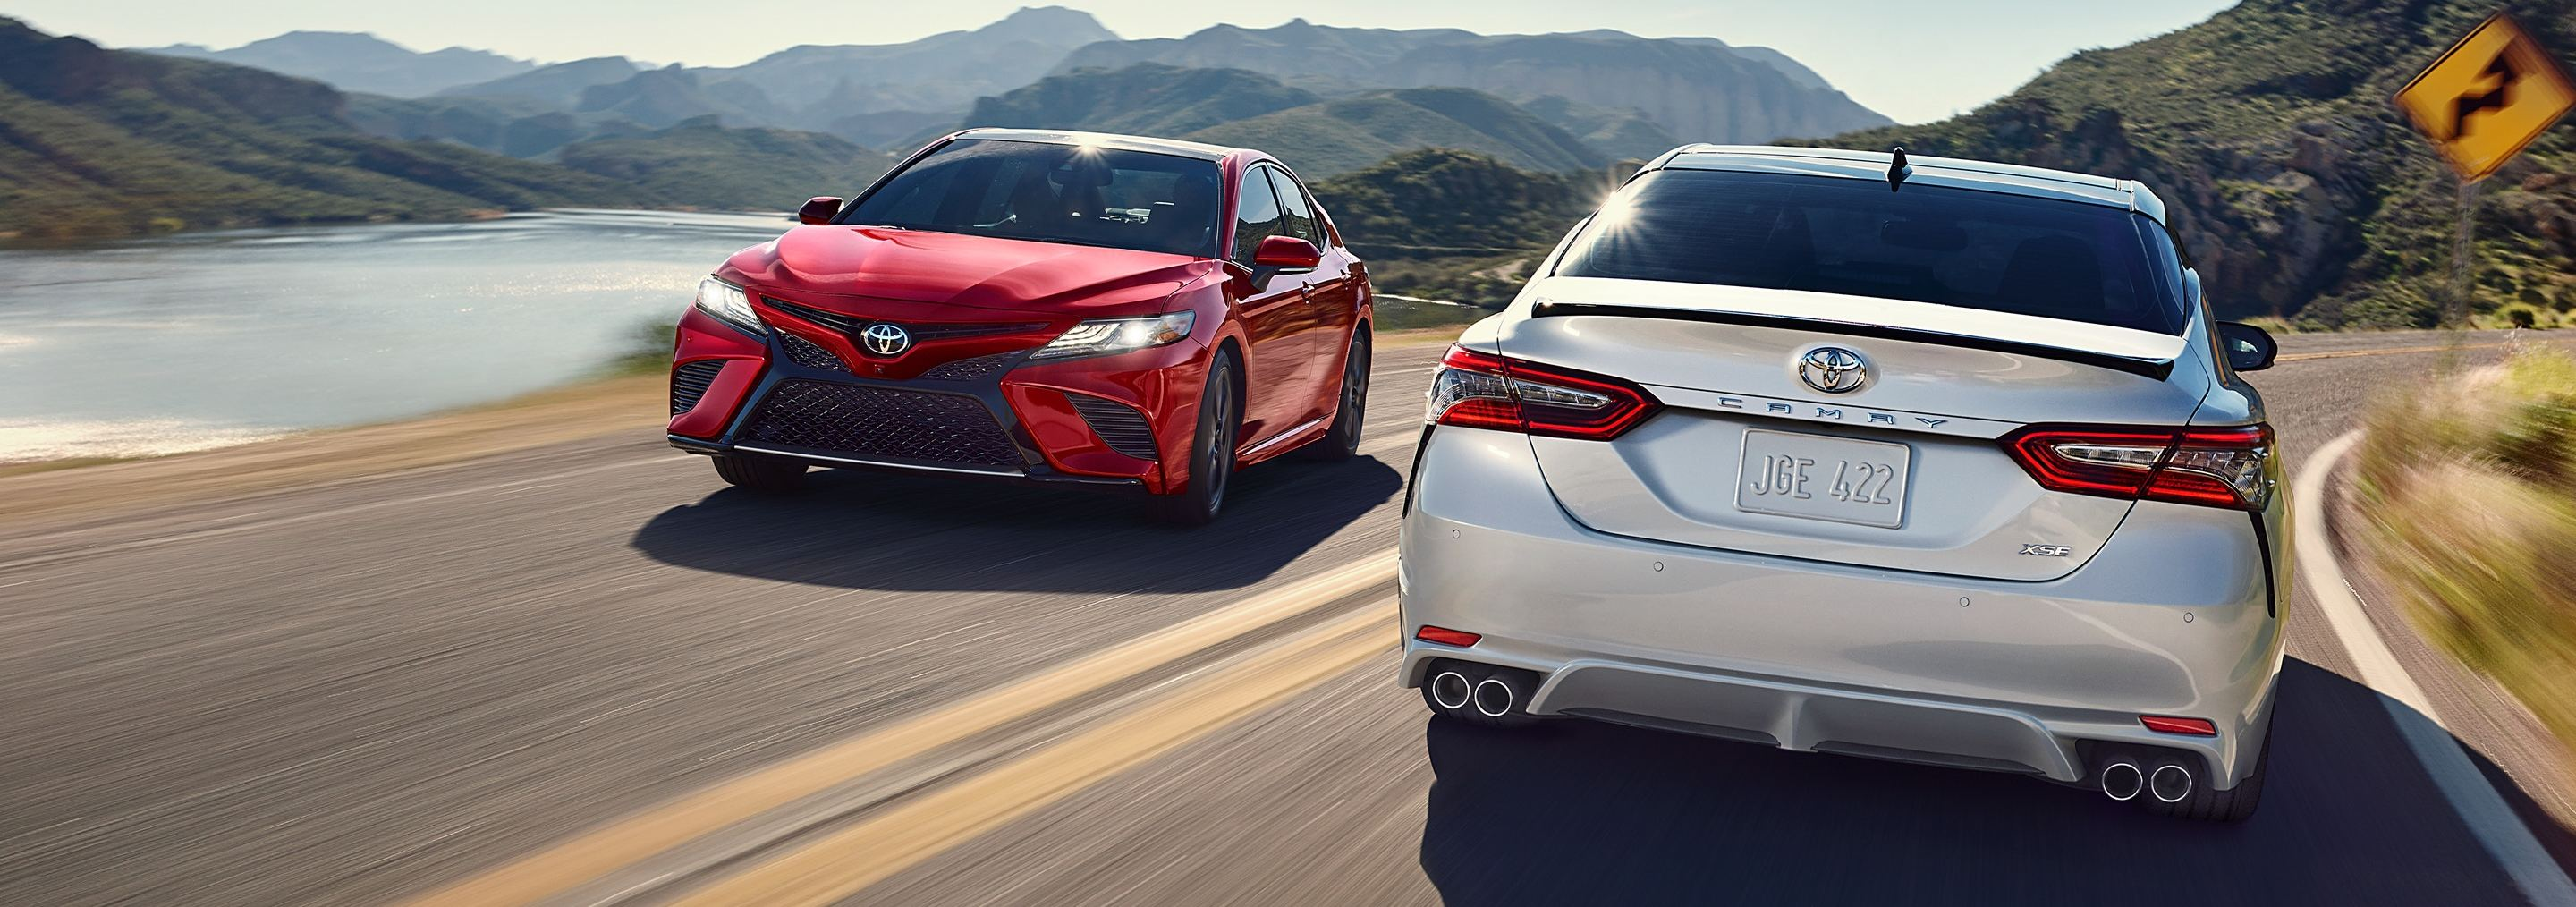 2020 Toyota Camry for Sale near North Plainfield, NJ